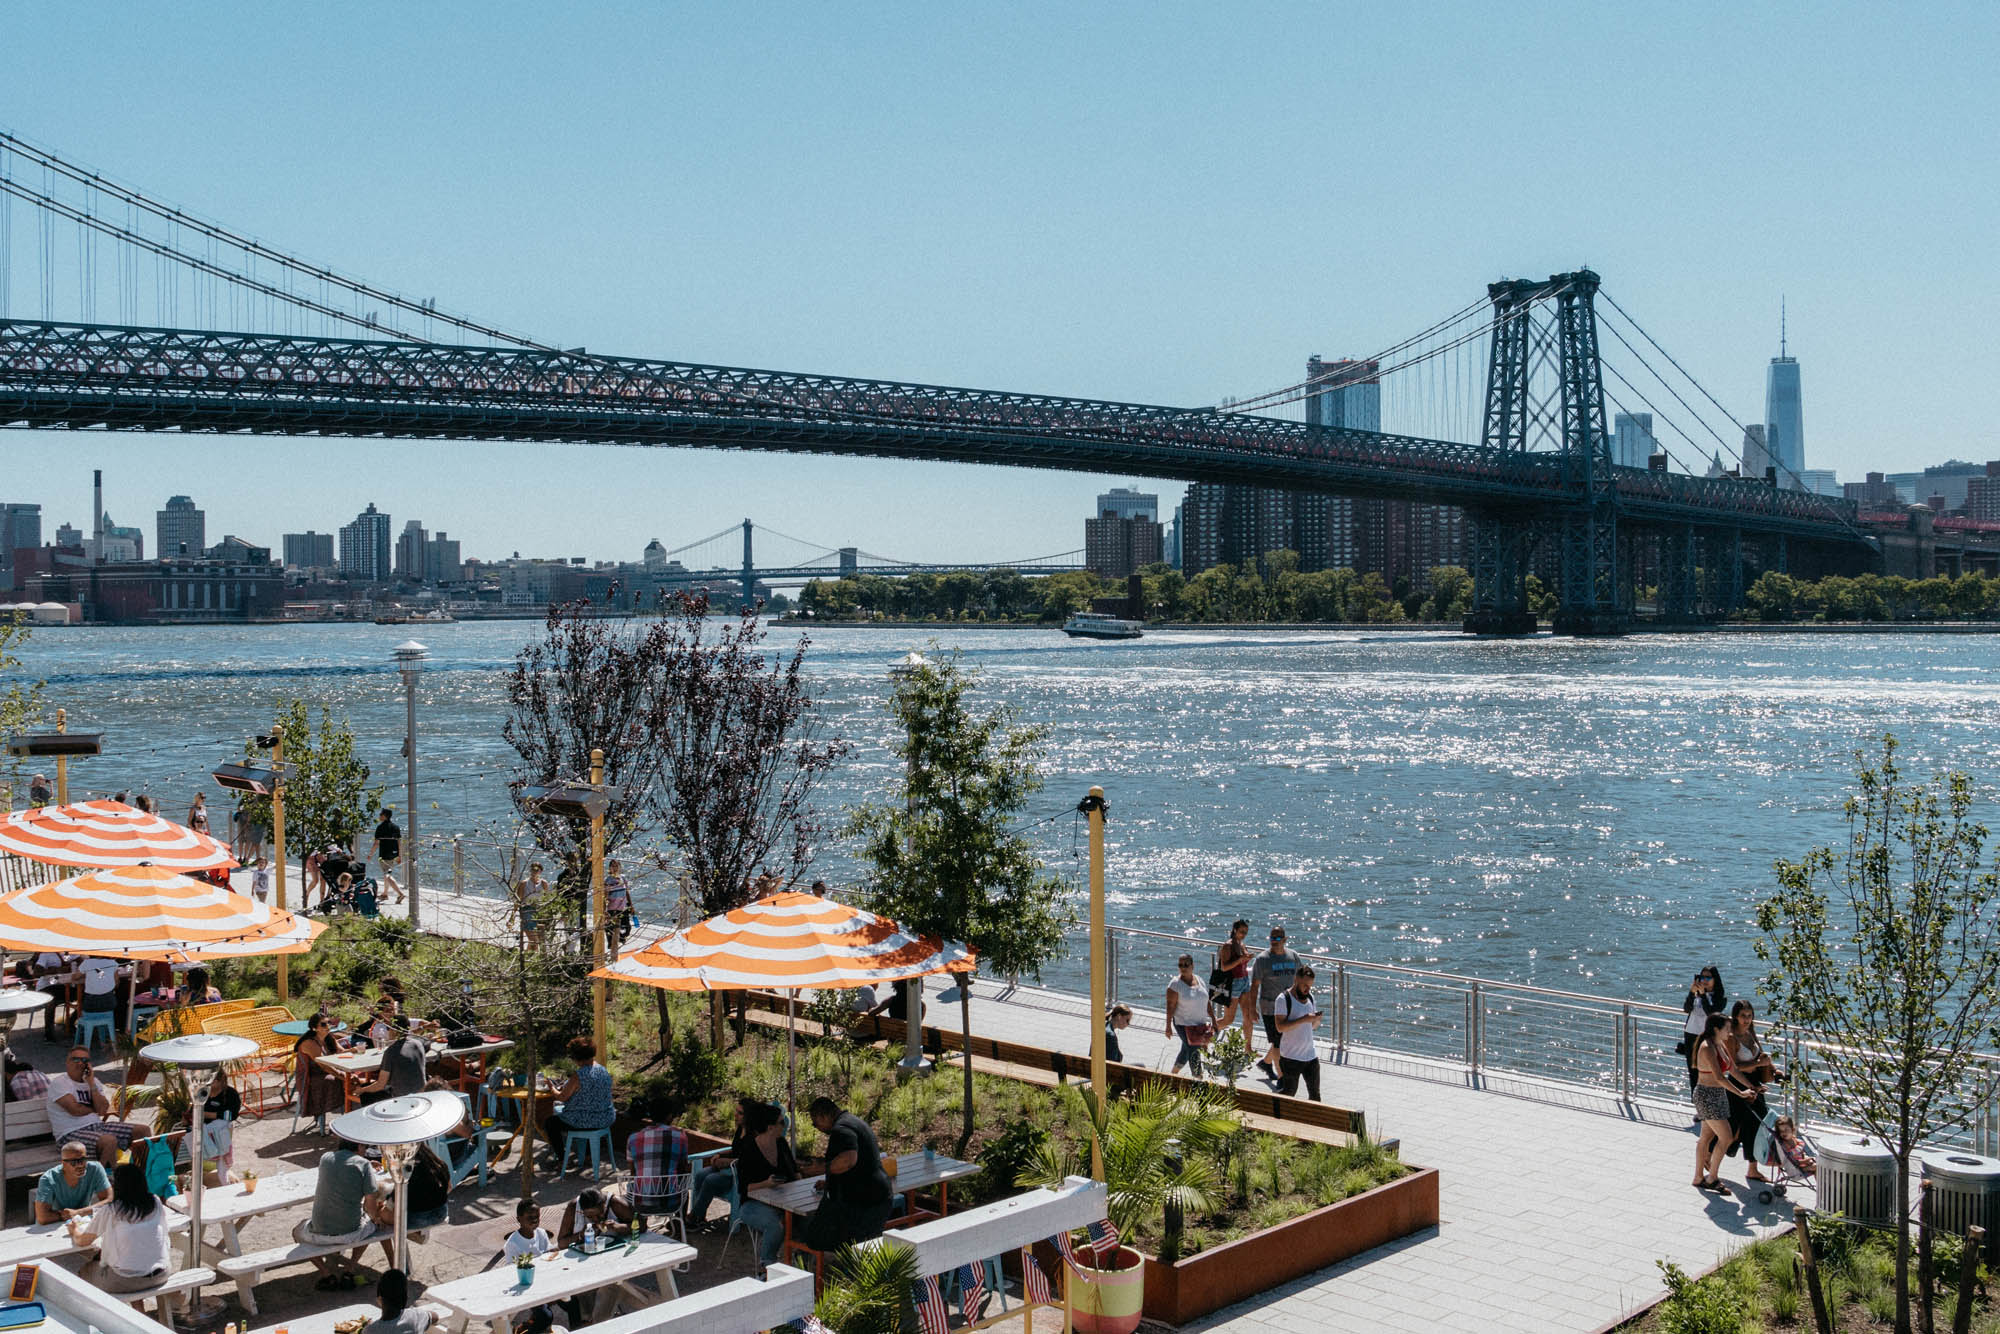 Domino Park  in Dumbo, Brooklyn